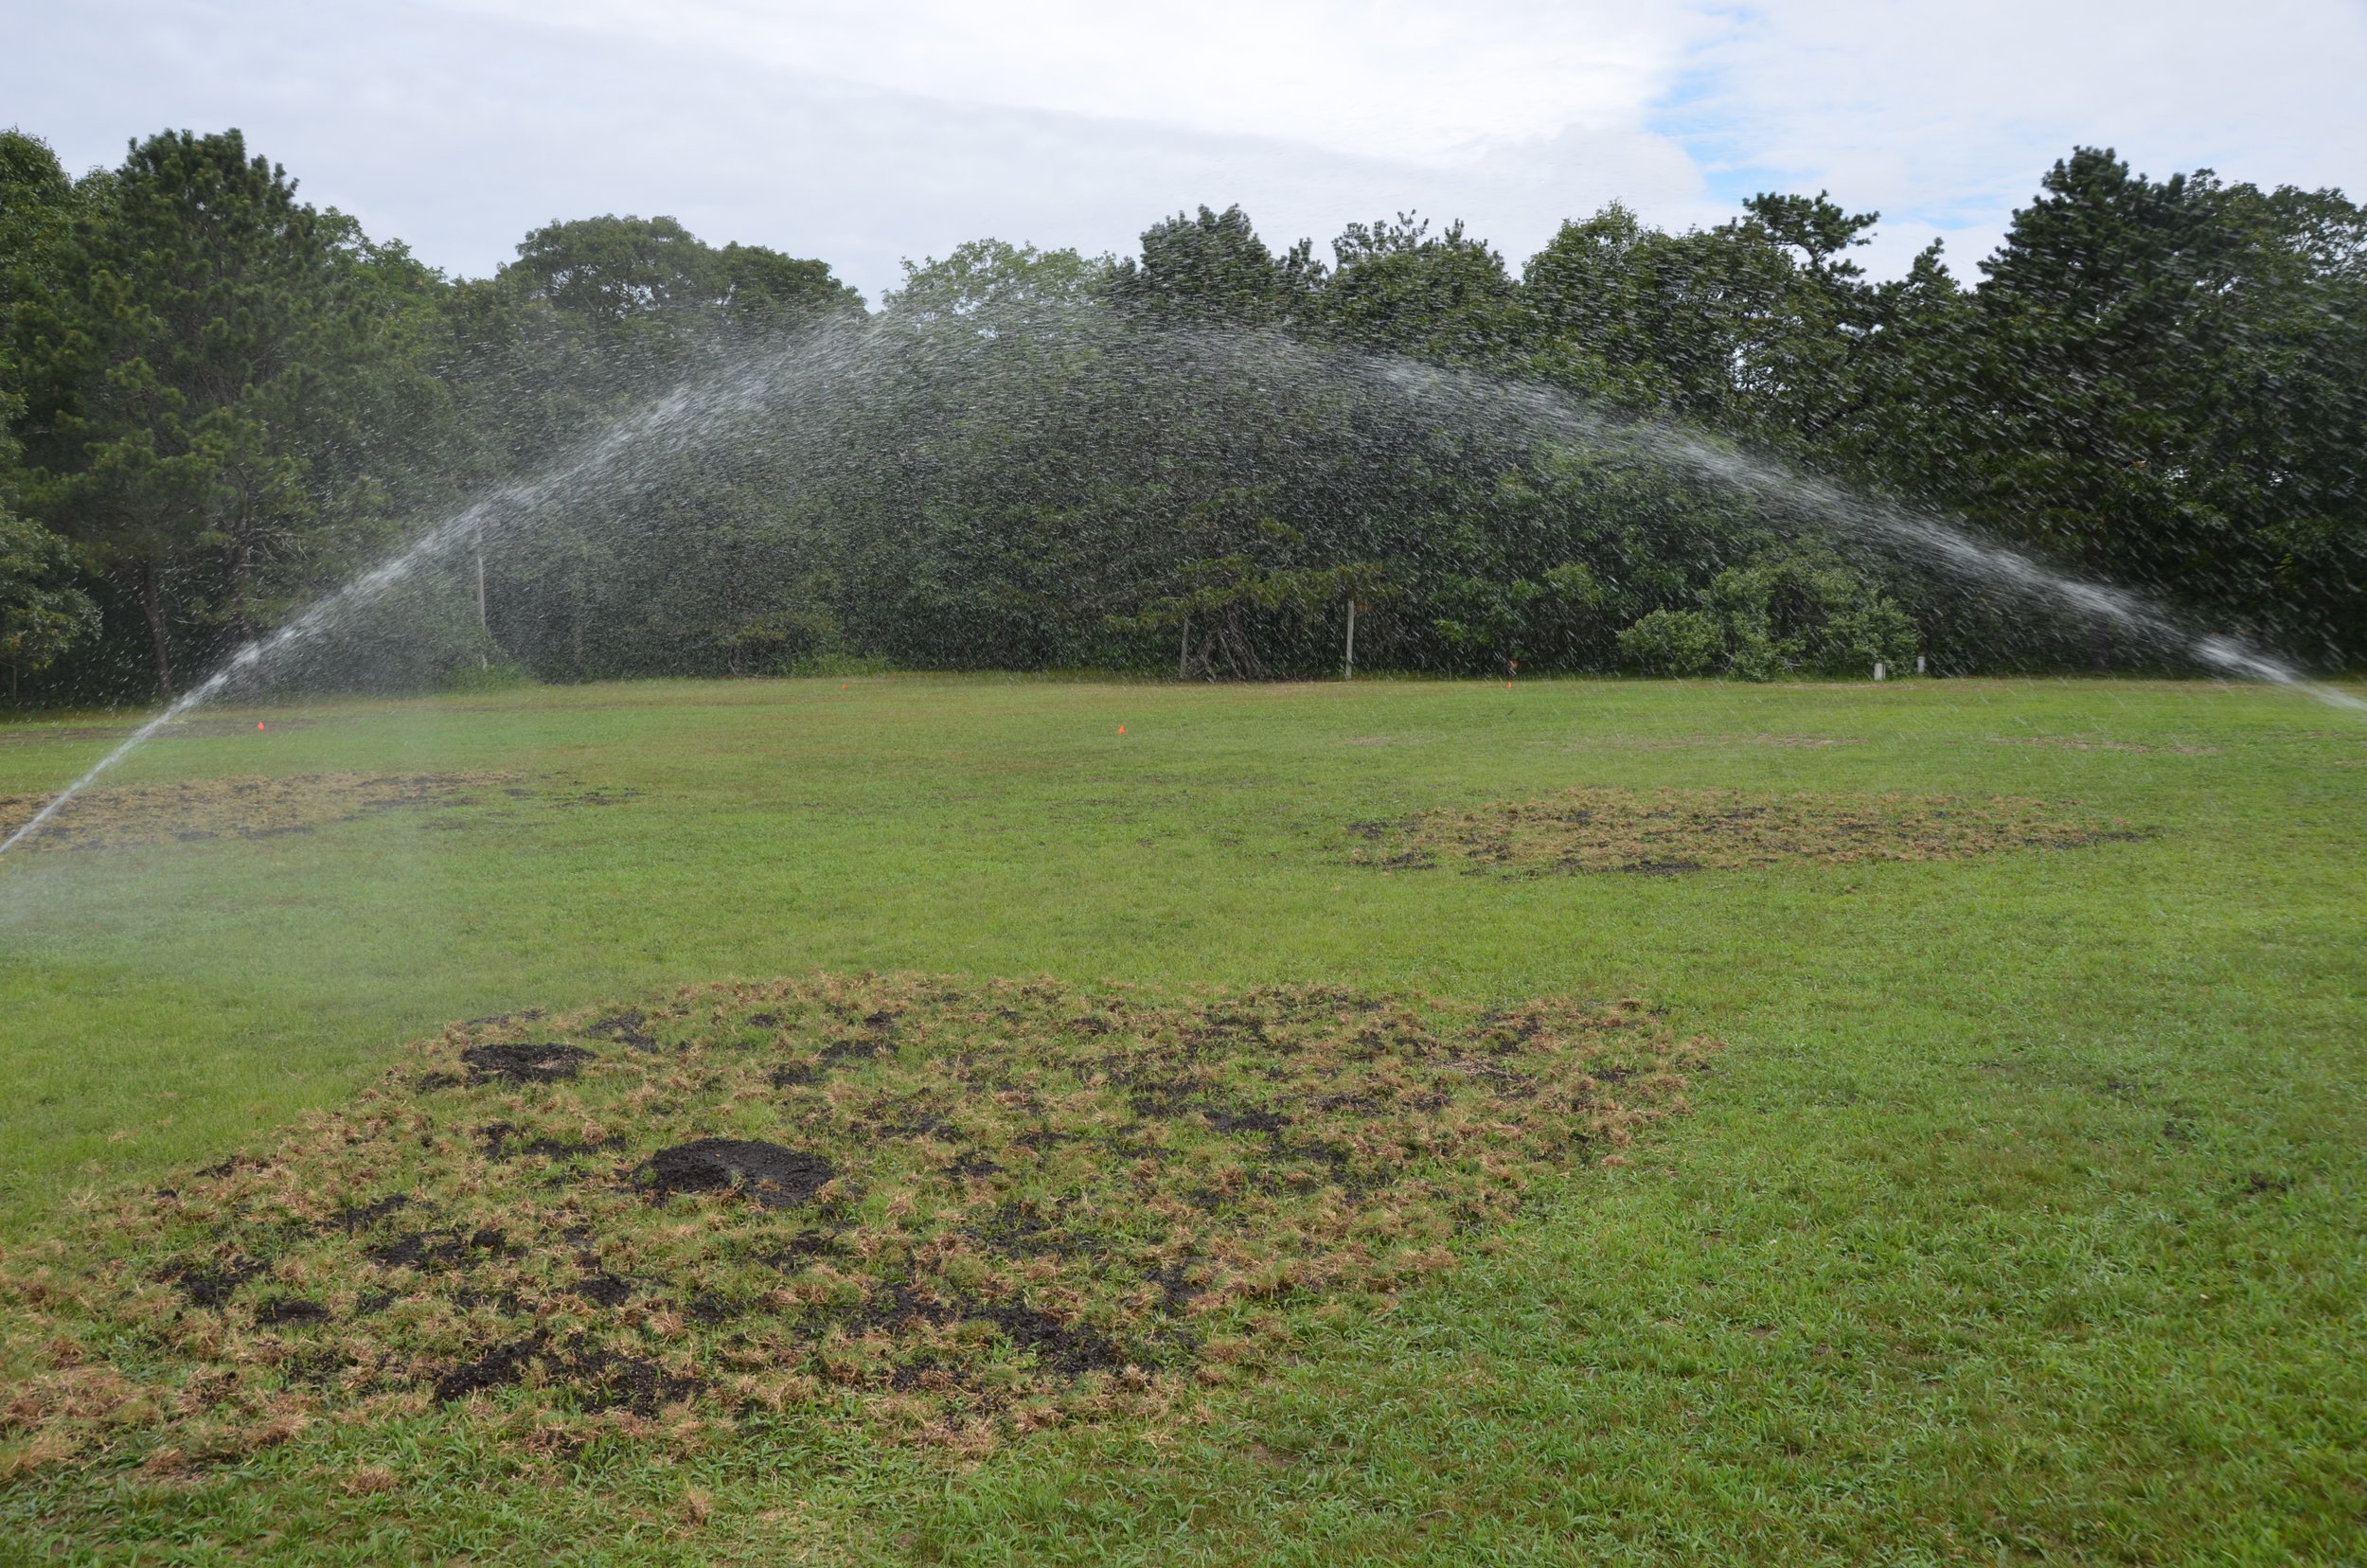 Testing the irrigation